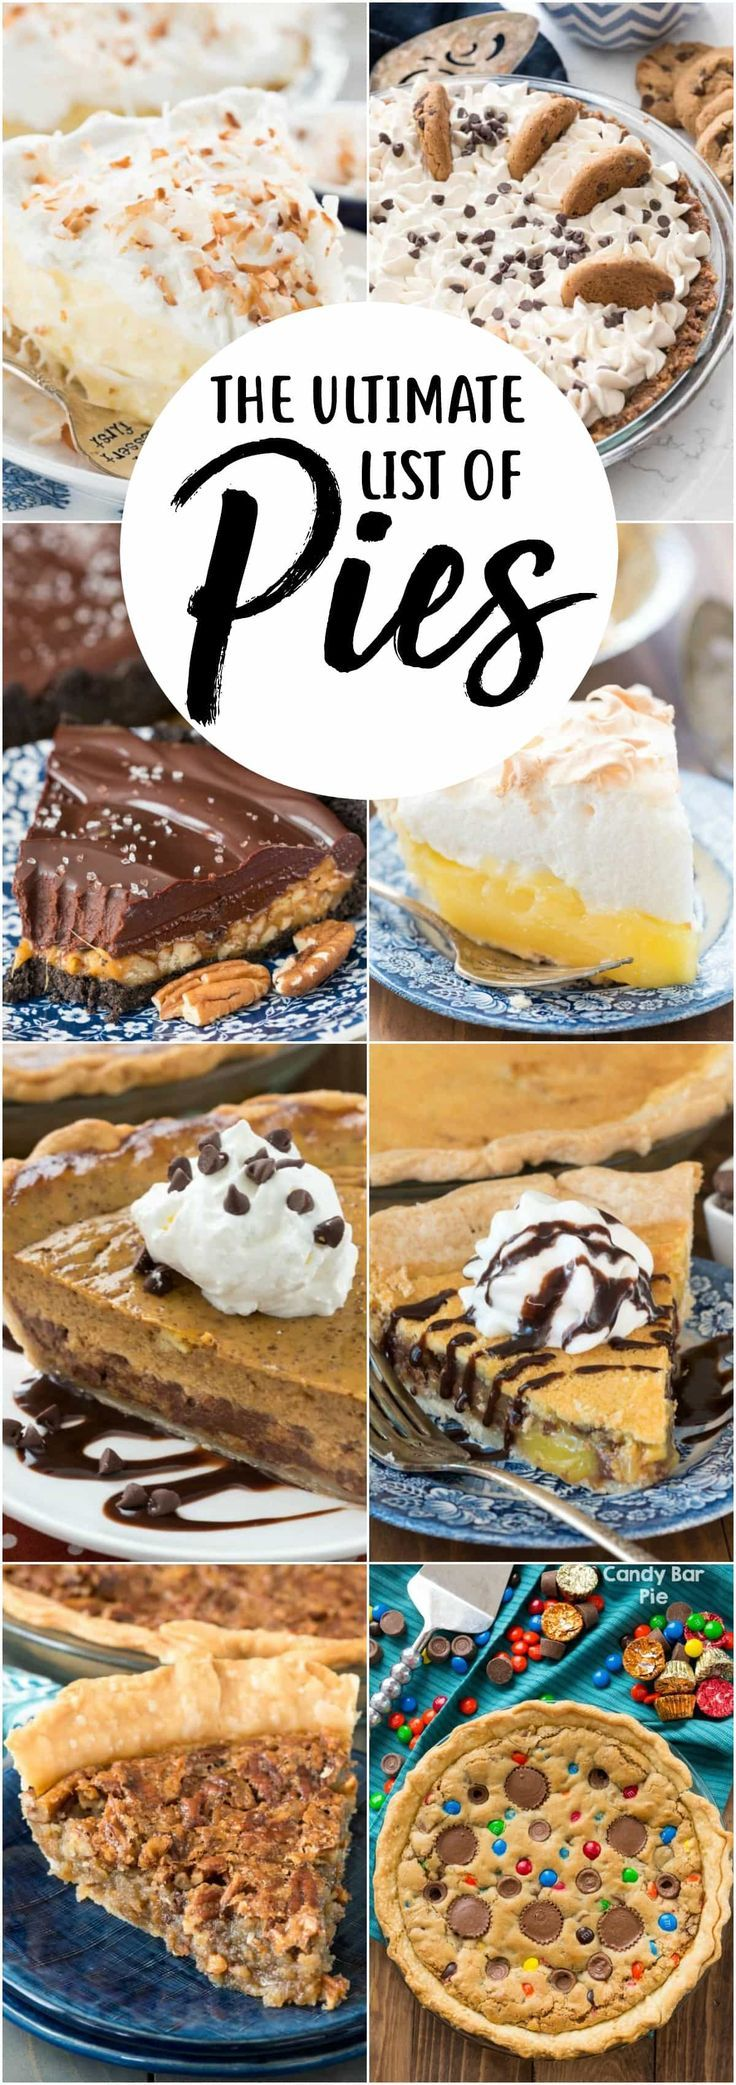 This is the Ultimate List of Pie Recipes with everything from pecan pie to coconut cream and every easy pie recipe in between.   via @crazyforcrust